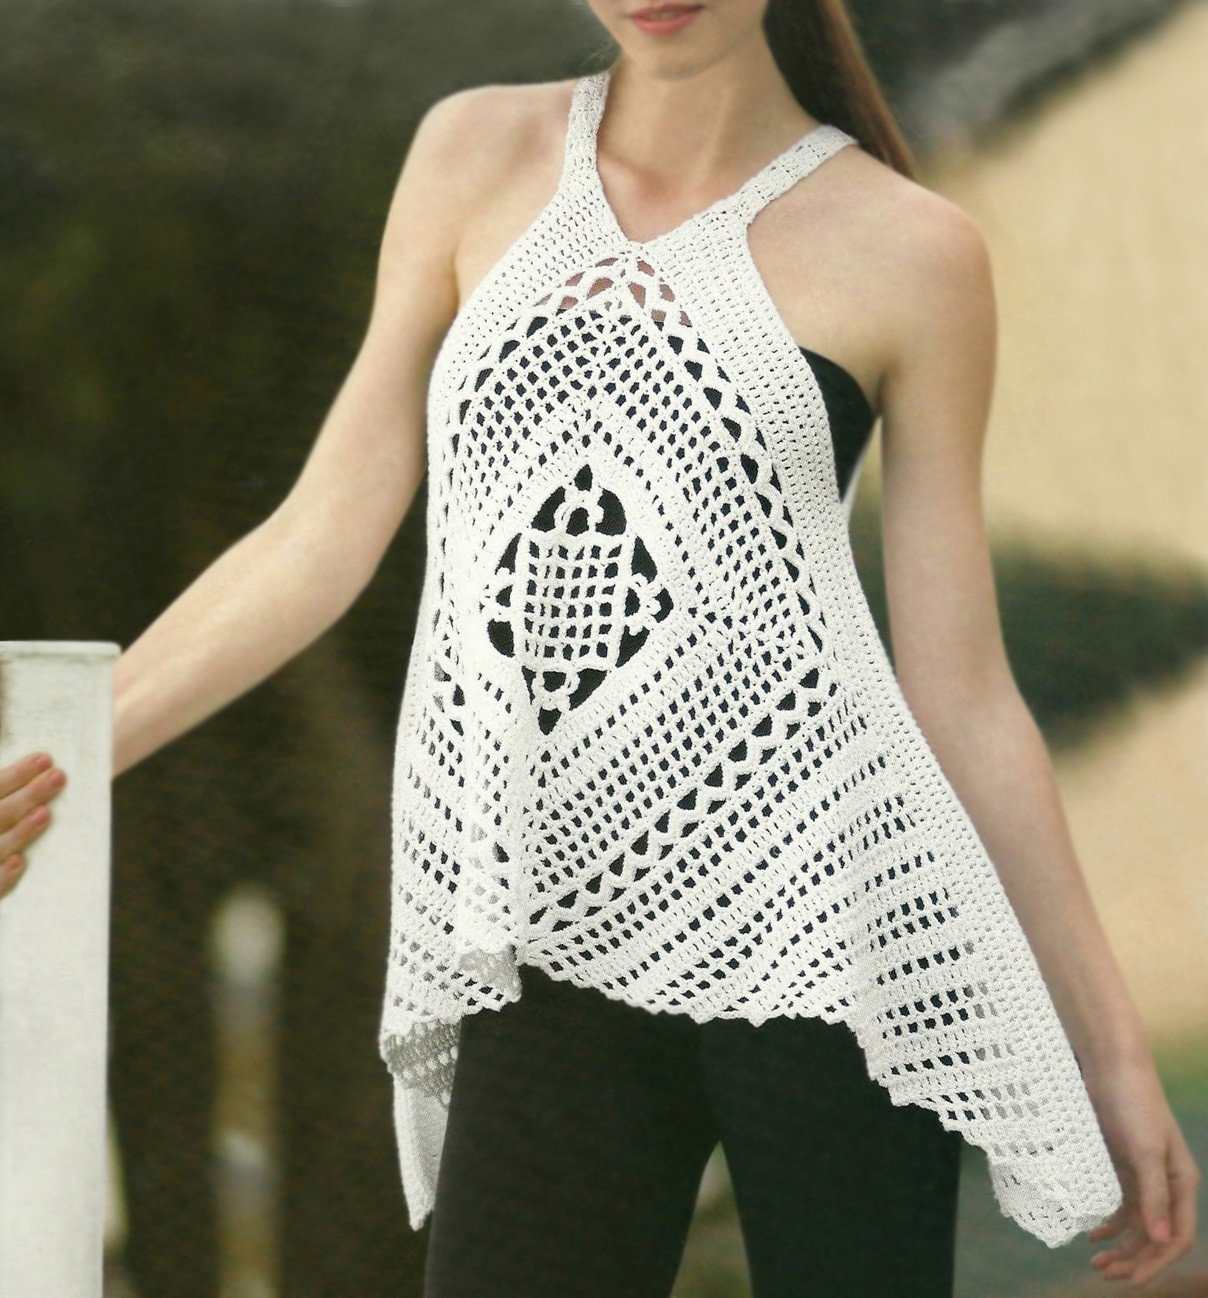 Crochet Blouse Pattern Fresh Crochet top Pattern Detailed Instructions In English for Of Unique 49 Ideas Crochet Blouse Pattern